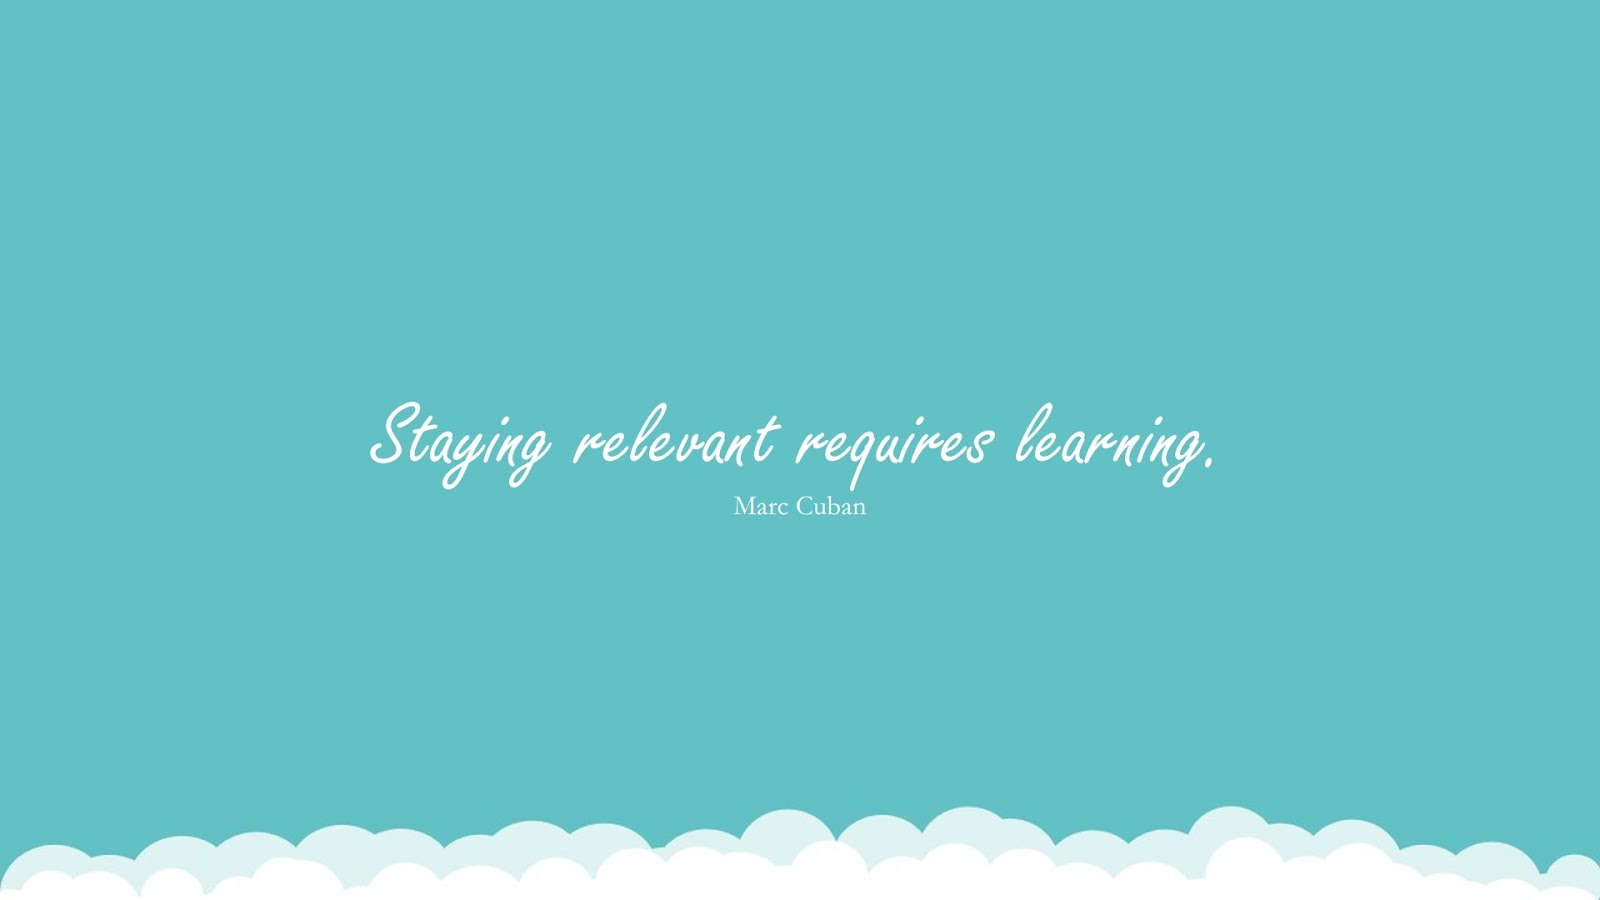 Staying relevant requires learning. (Marc Cuban);  #LearningQuotes